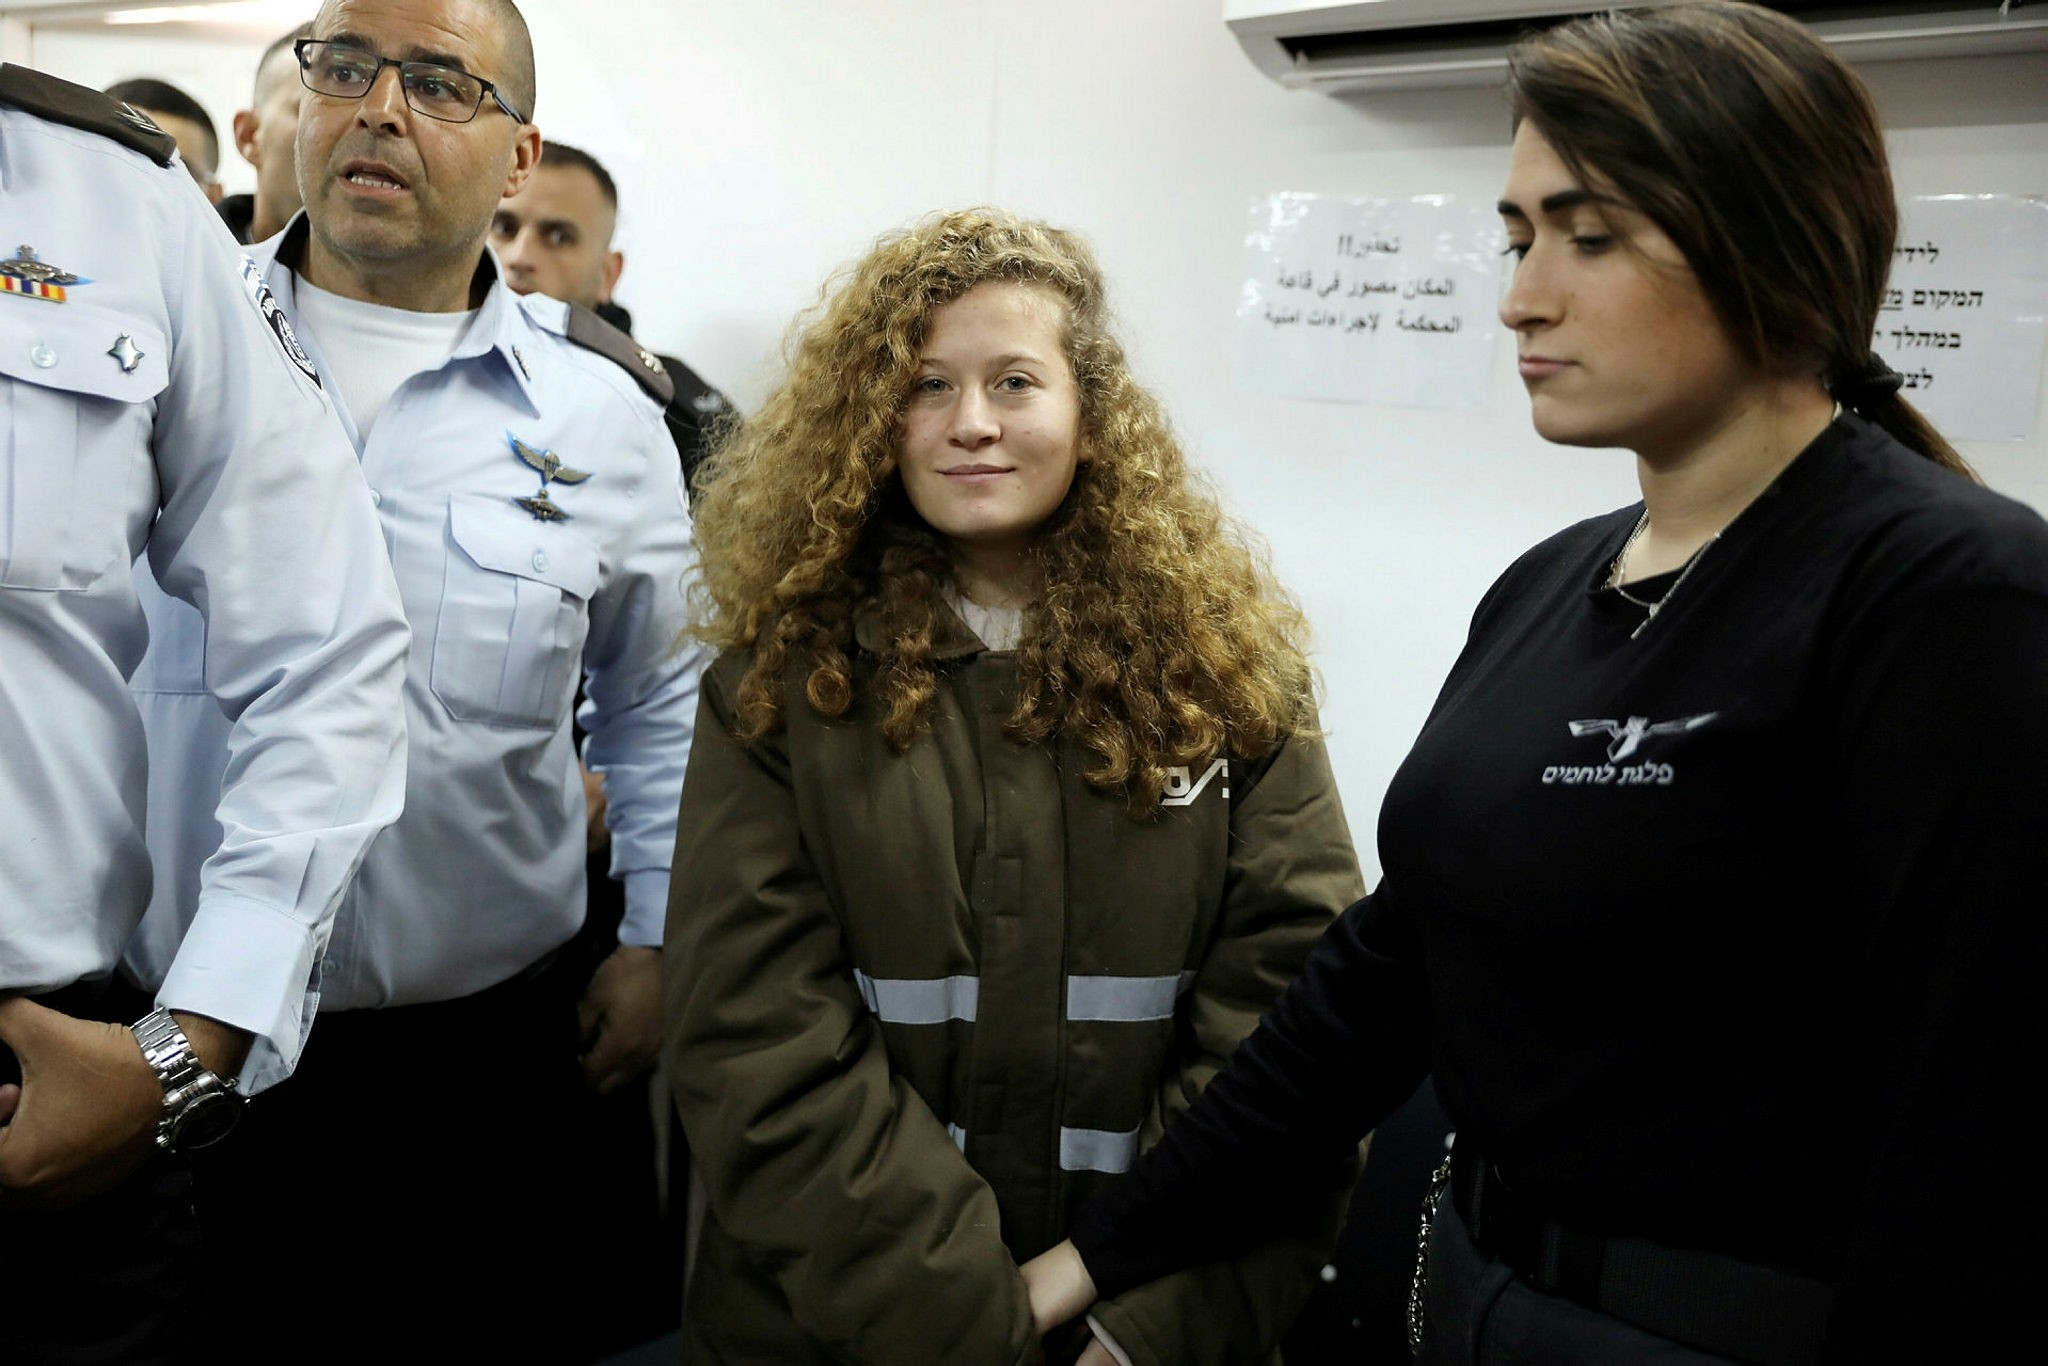 Palestinian Ahed Tamimi, 17, enters a military courtroom escorted by Israeli security personnel at Ofer Prison near the West Bank city of Ramallah, Jan. 15.